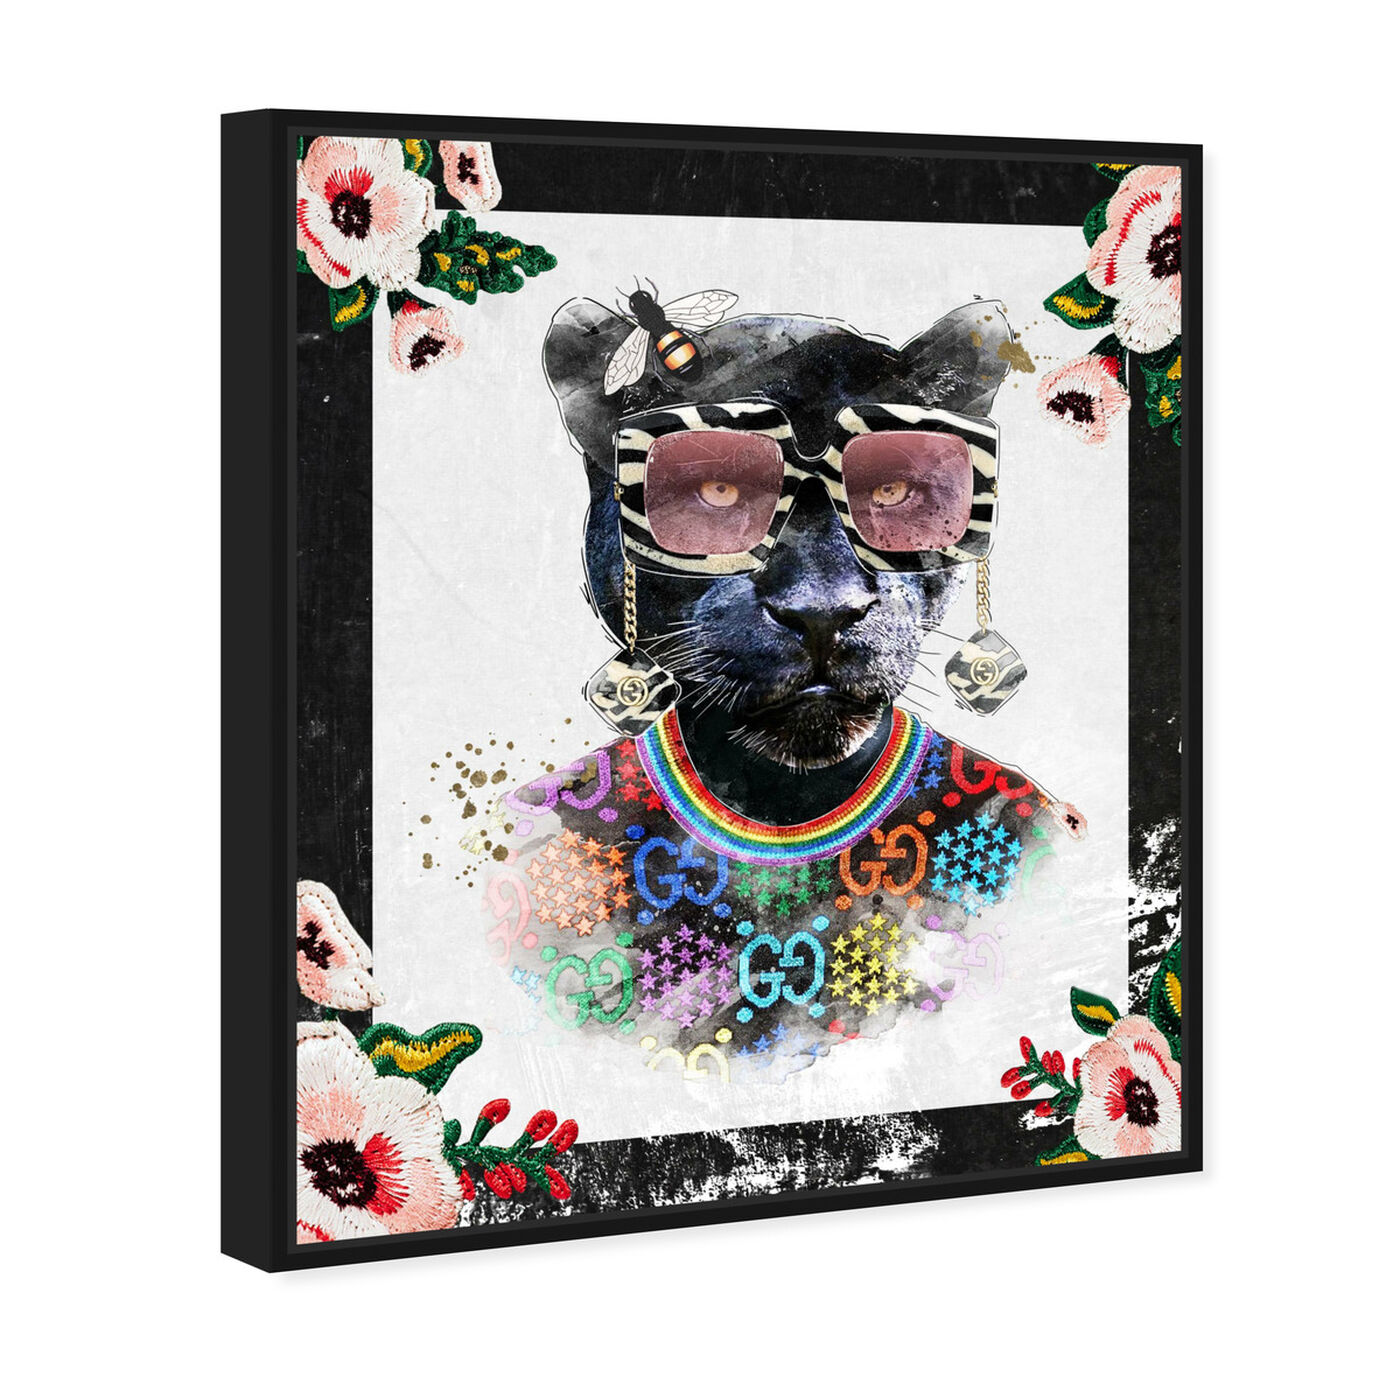 Angled view of Luxe Mama Portrait featuring animals and zoo and wild animals art.